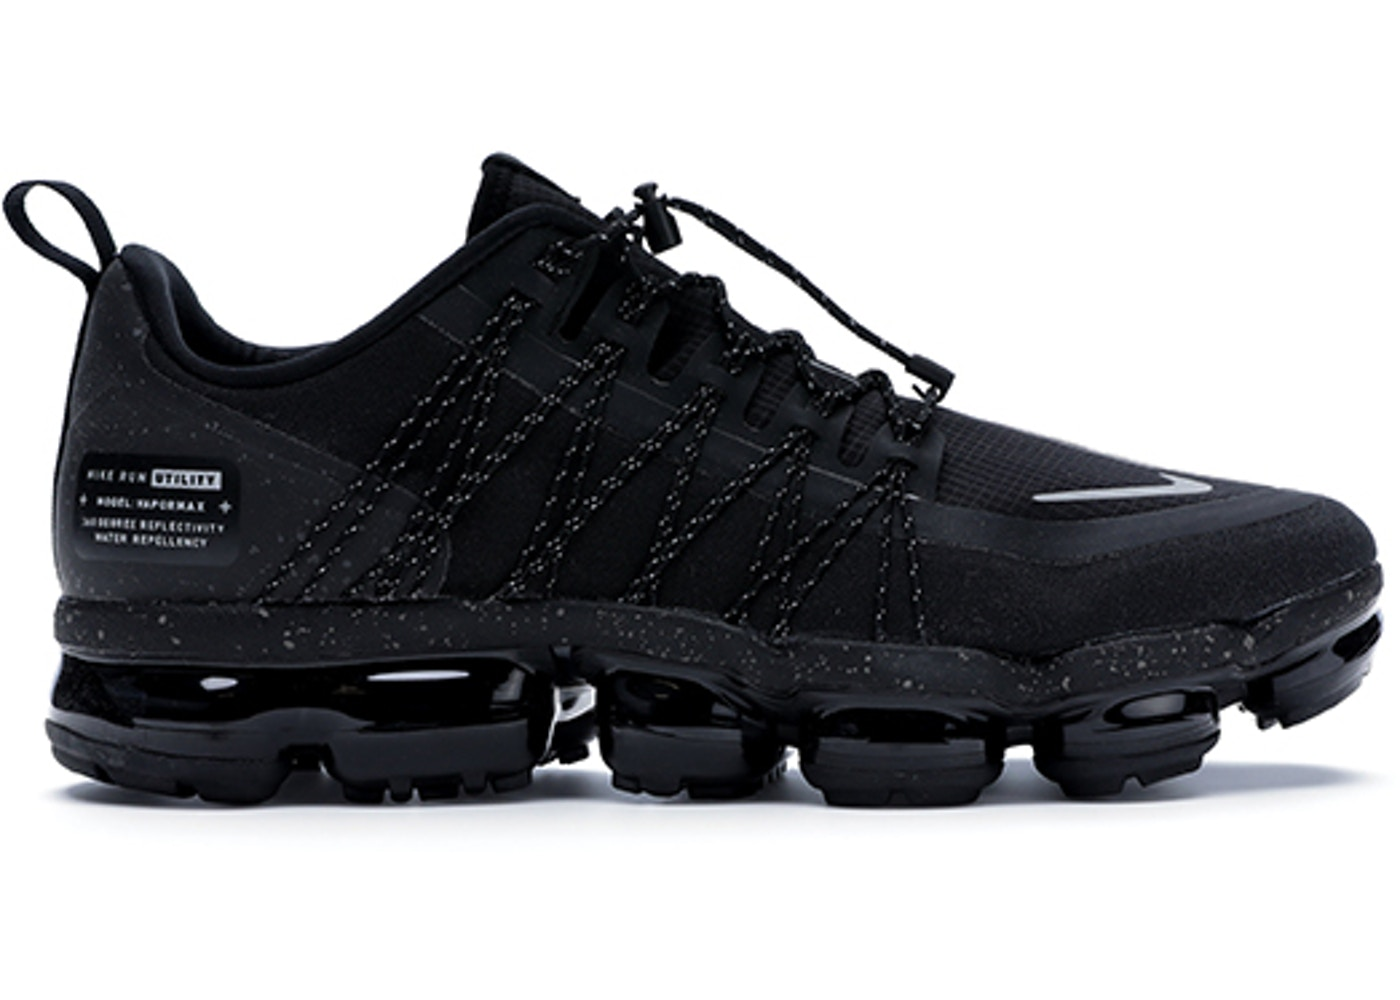 90988f930c803 Buy Air Max VaporMax Shoes   Deadstock Sneakers